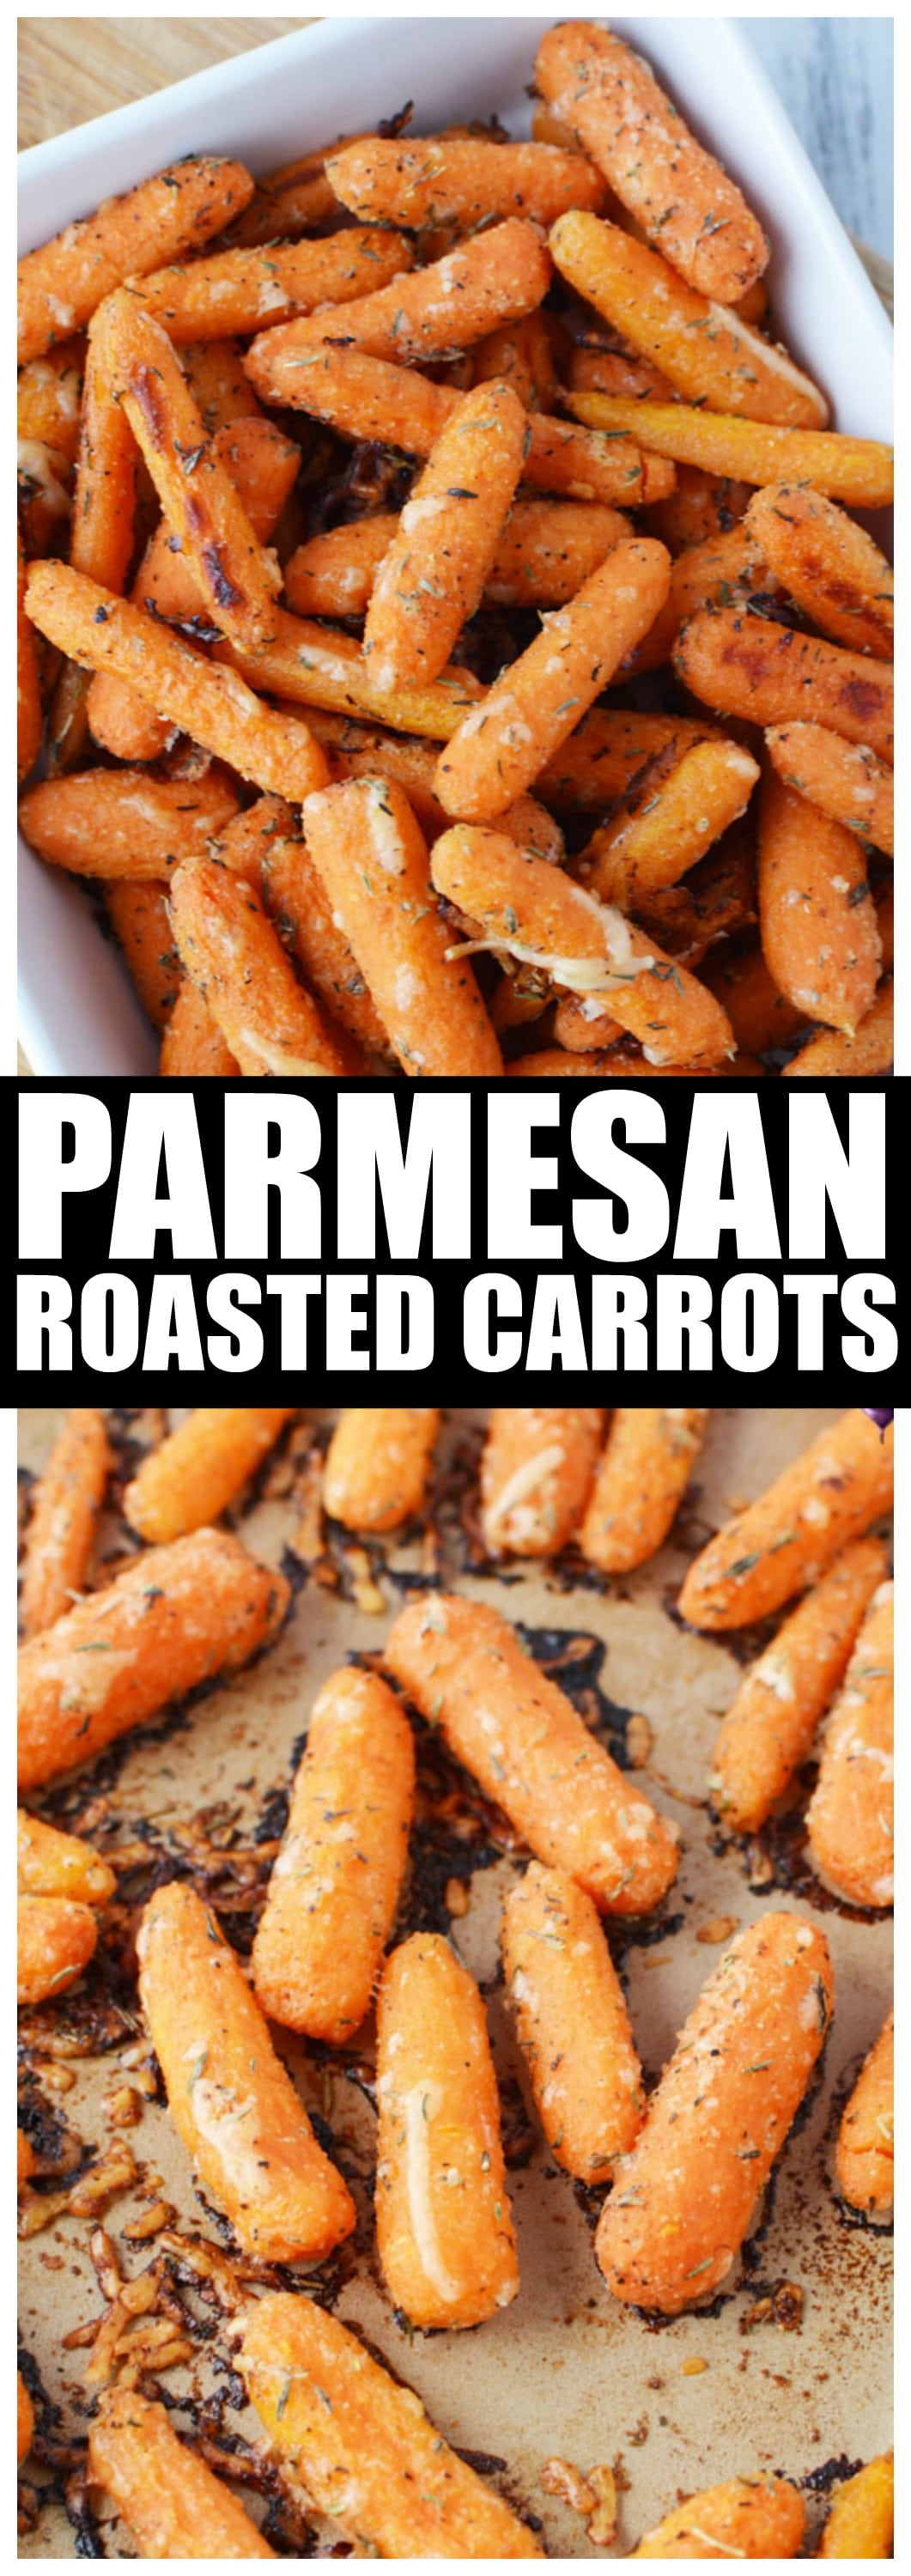 Parmesan Roasted Carrots Recipe in the Oven with Garlic and Freshly Grated Cheese #ovenroasted #sidedish #carrots #saltysidedish